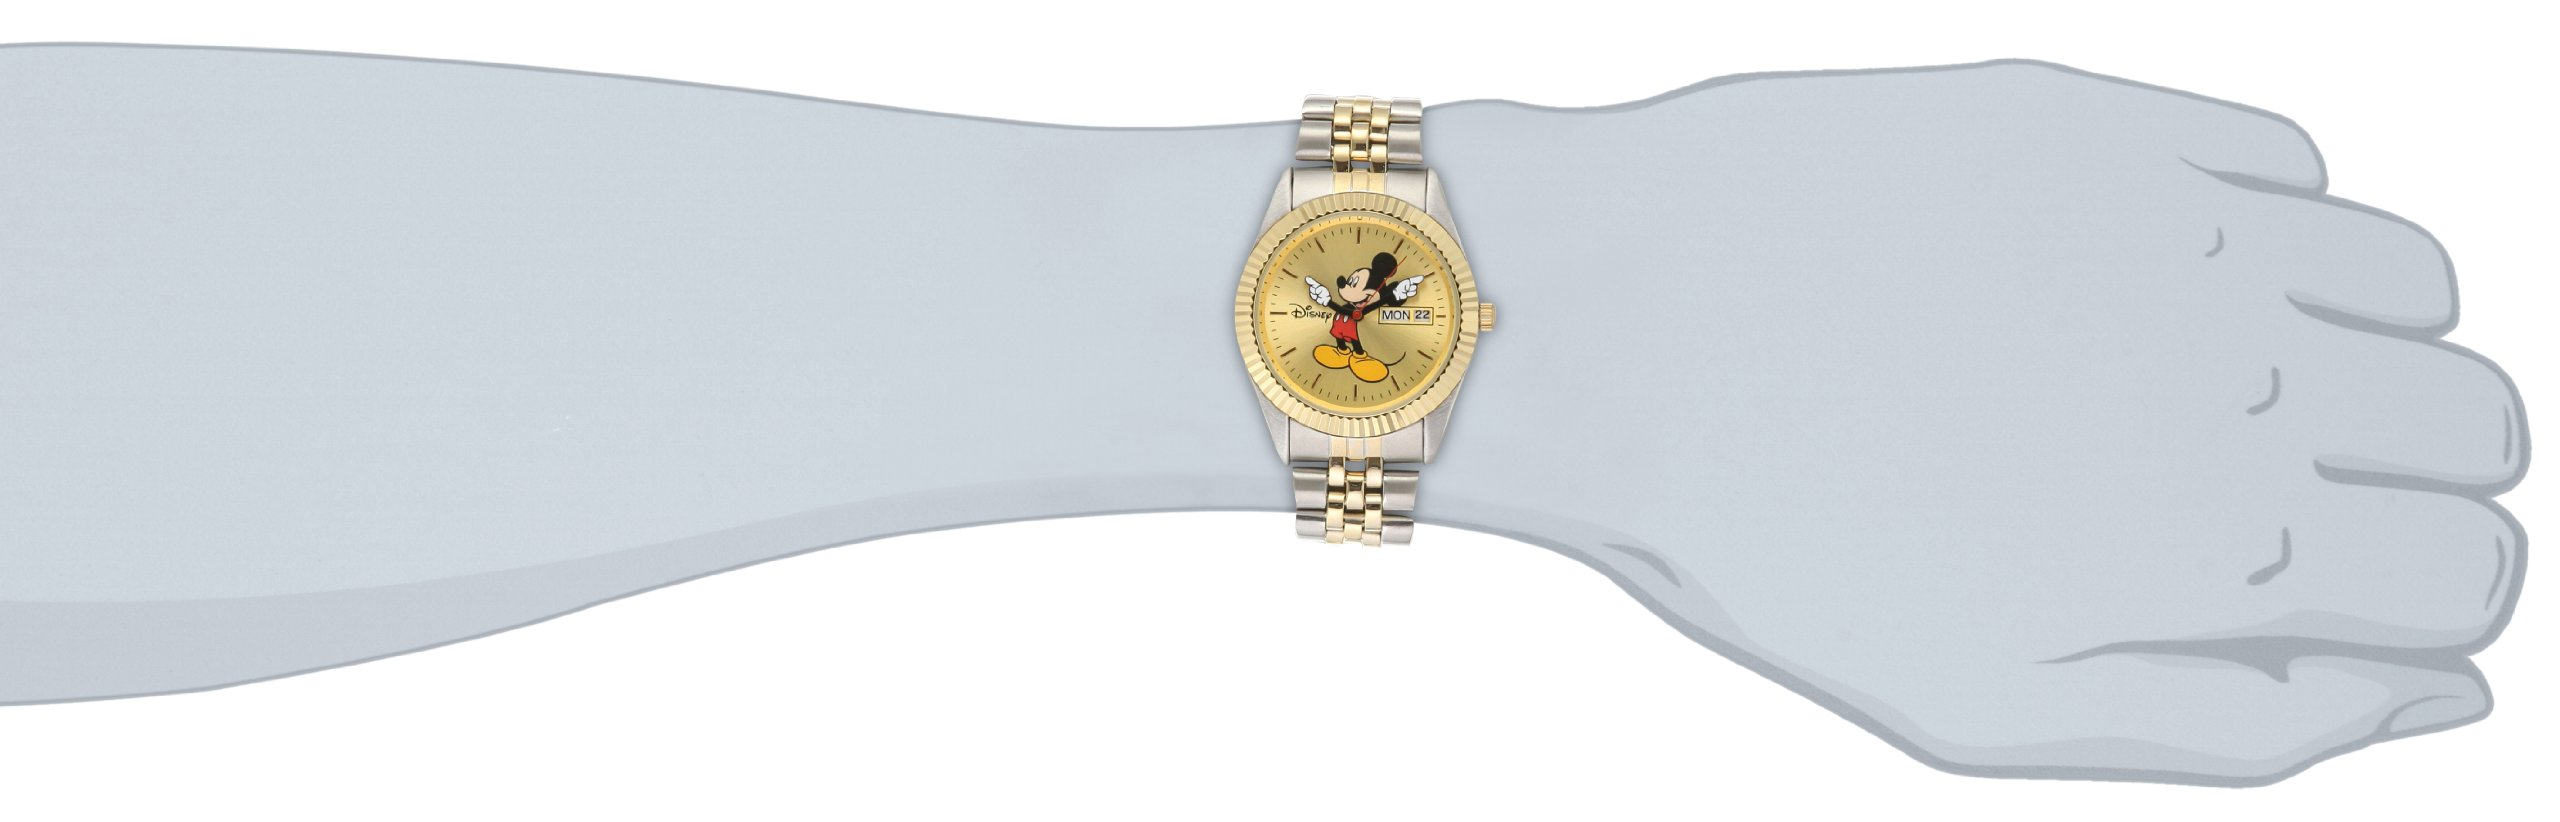 Disney Men's MM0060 Two-Tone Mickey Mouse Watch with Day and Date Movement by Ewatchfactory (Image #4)